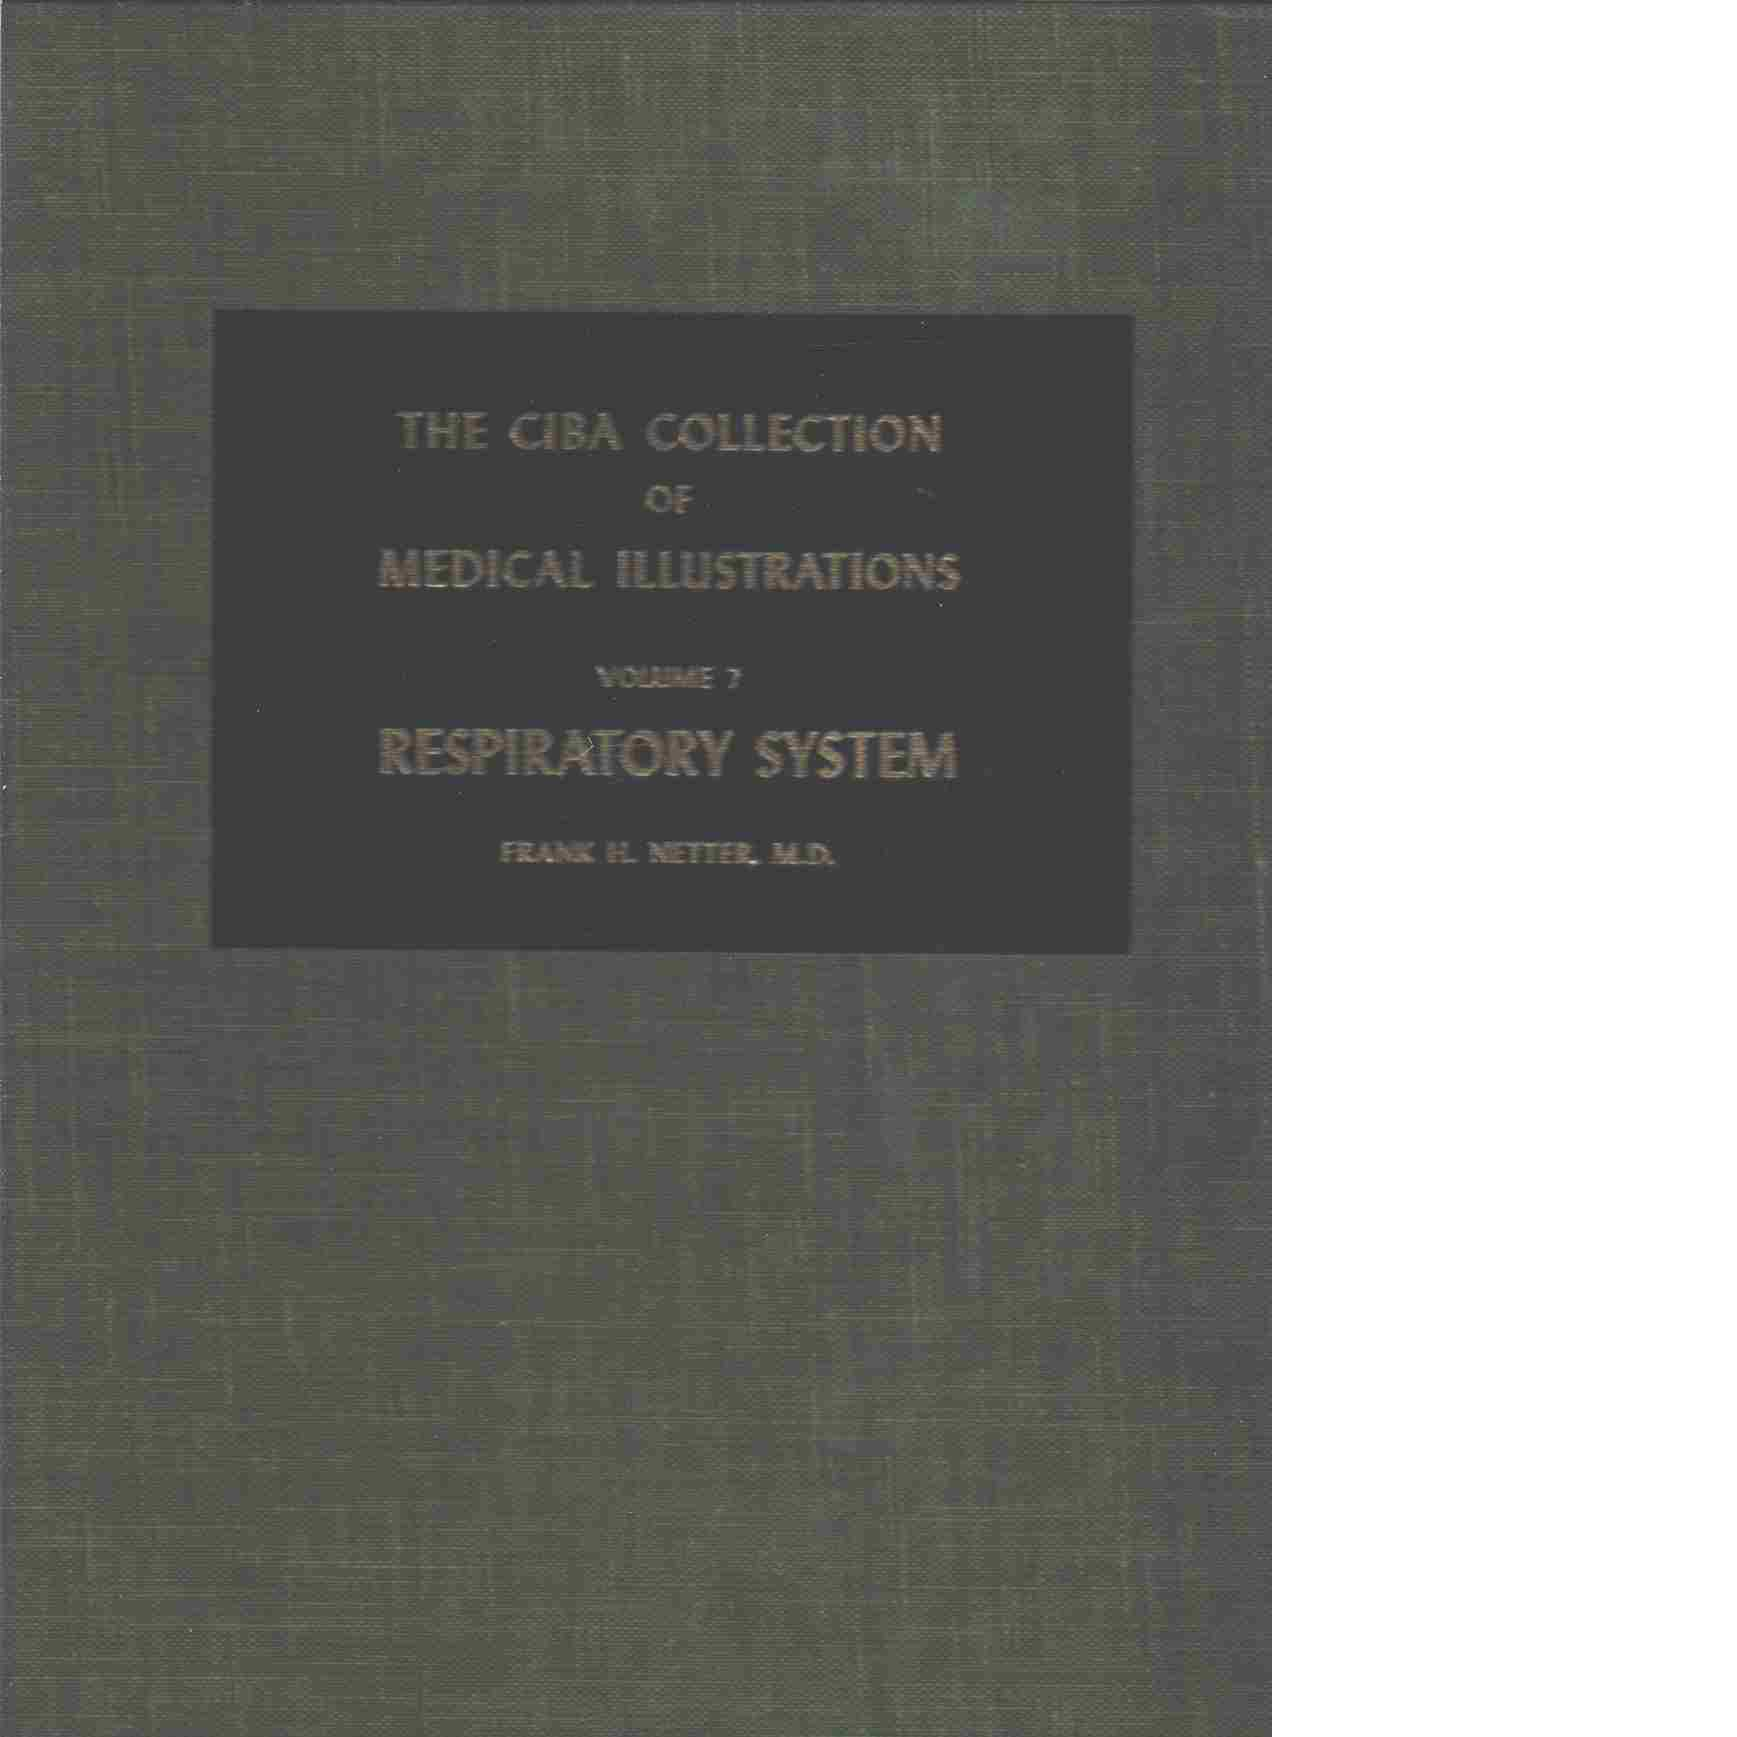 The Ciba Collection of Medical Illustrations, Volume 7 Respiratory system - Netter Frank H.